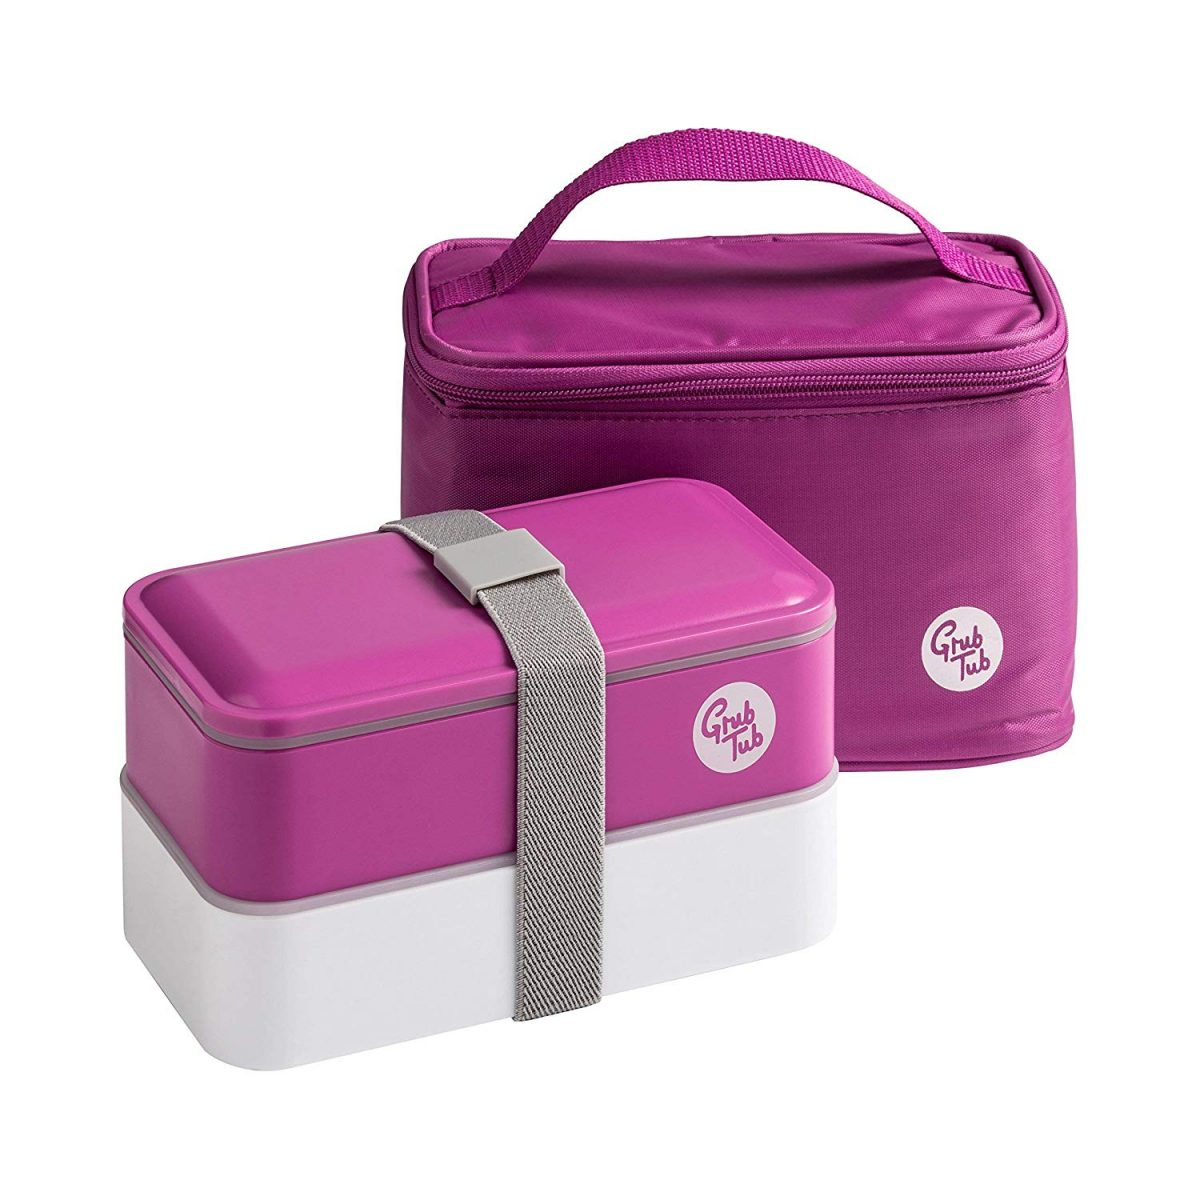 Grub Tub Lunch Box With 2 Containers/Cool Bag/Cutlery